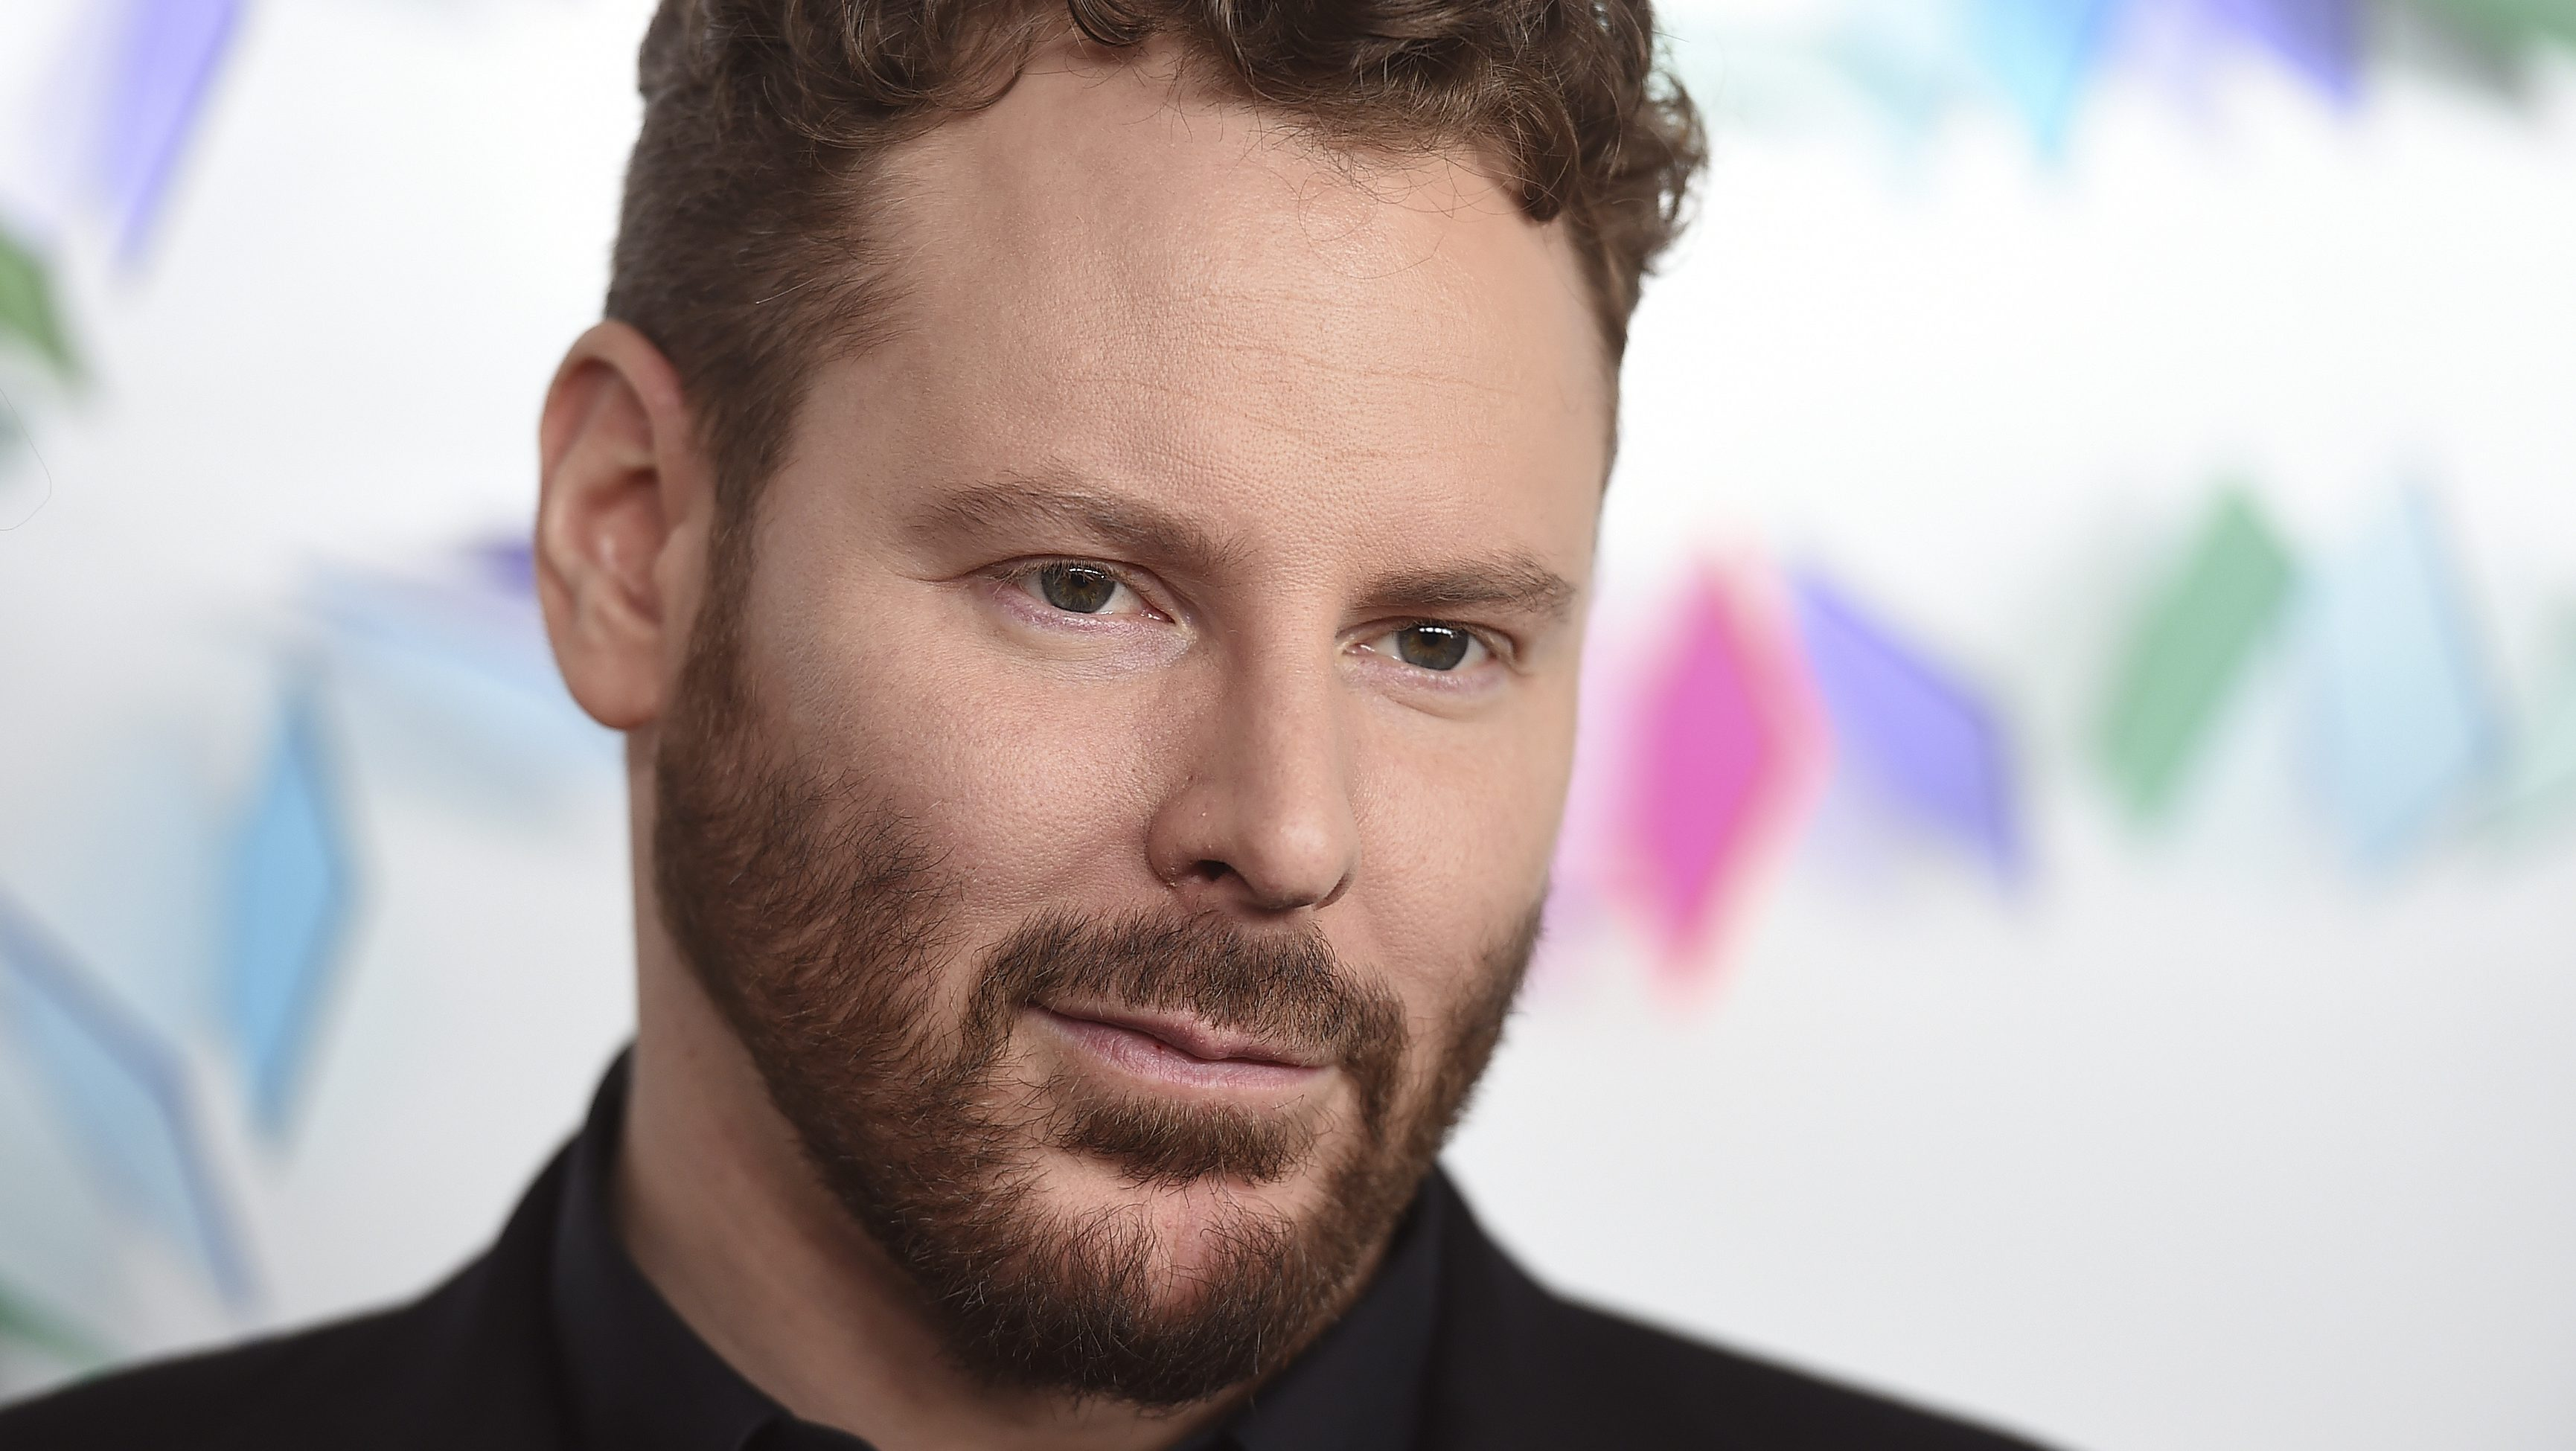 Sean Parker arrives at the Kaleidoscope 5: LIGHT event on Saturday, May 6, 2017 in Culver City, Calif. (Photo by Jordan Strauss/Invision/AP)